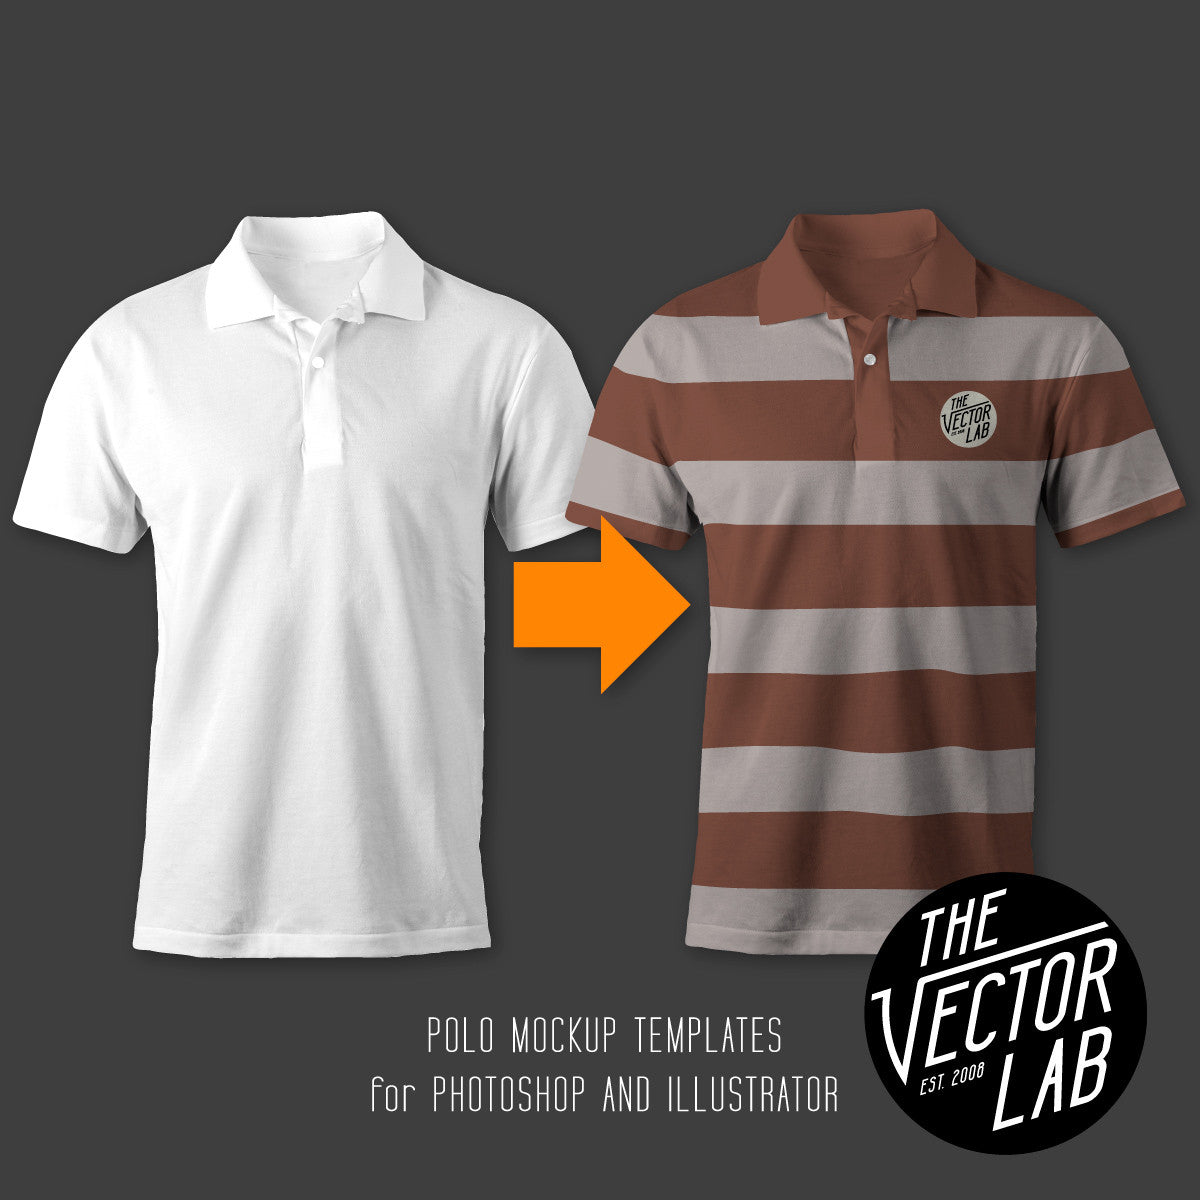 men u0026 39 s polo mockup templates